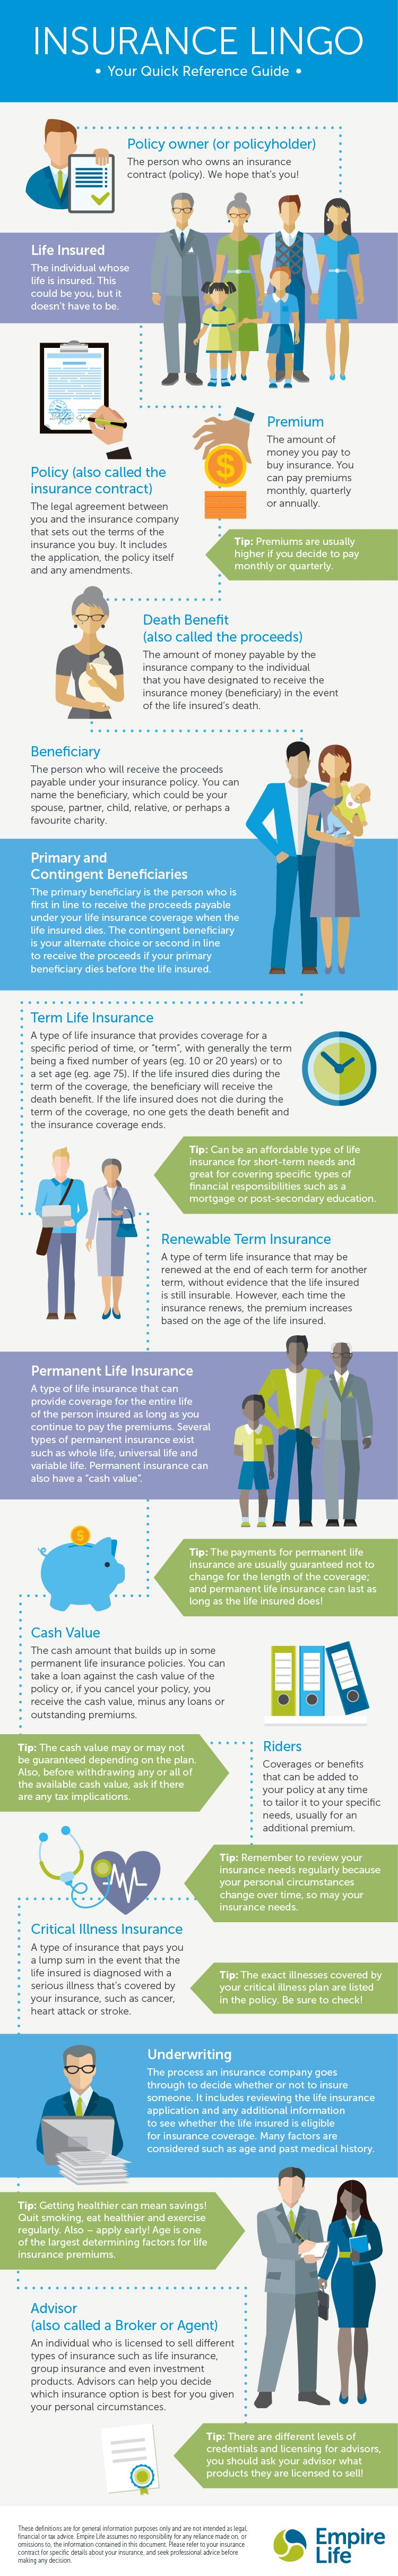 Insurance Lingo - Your Quick Reference Guide